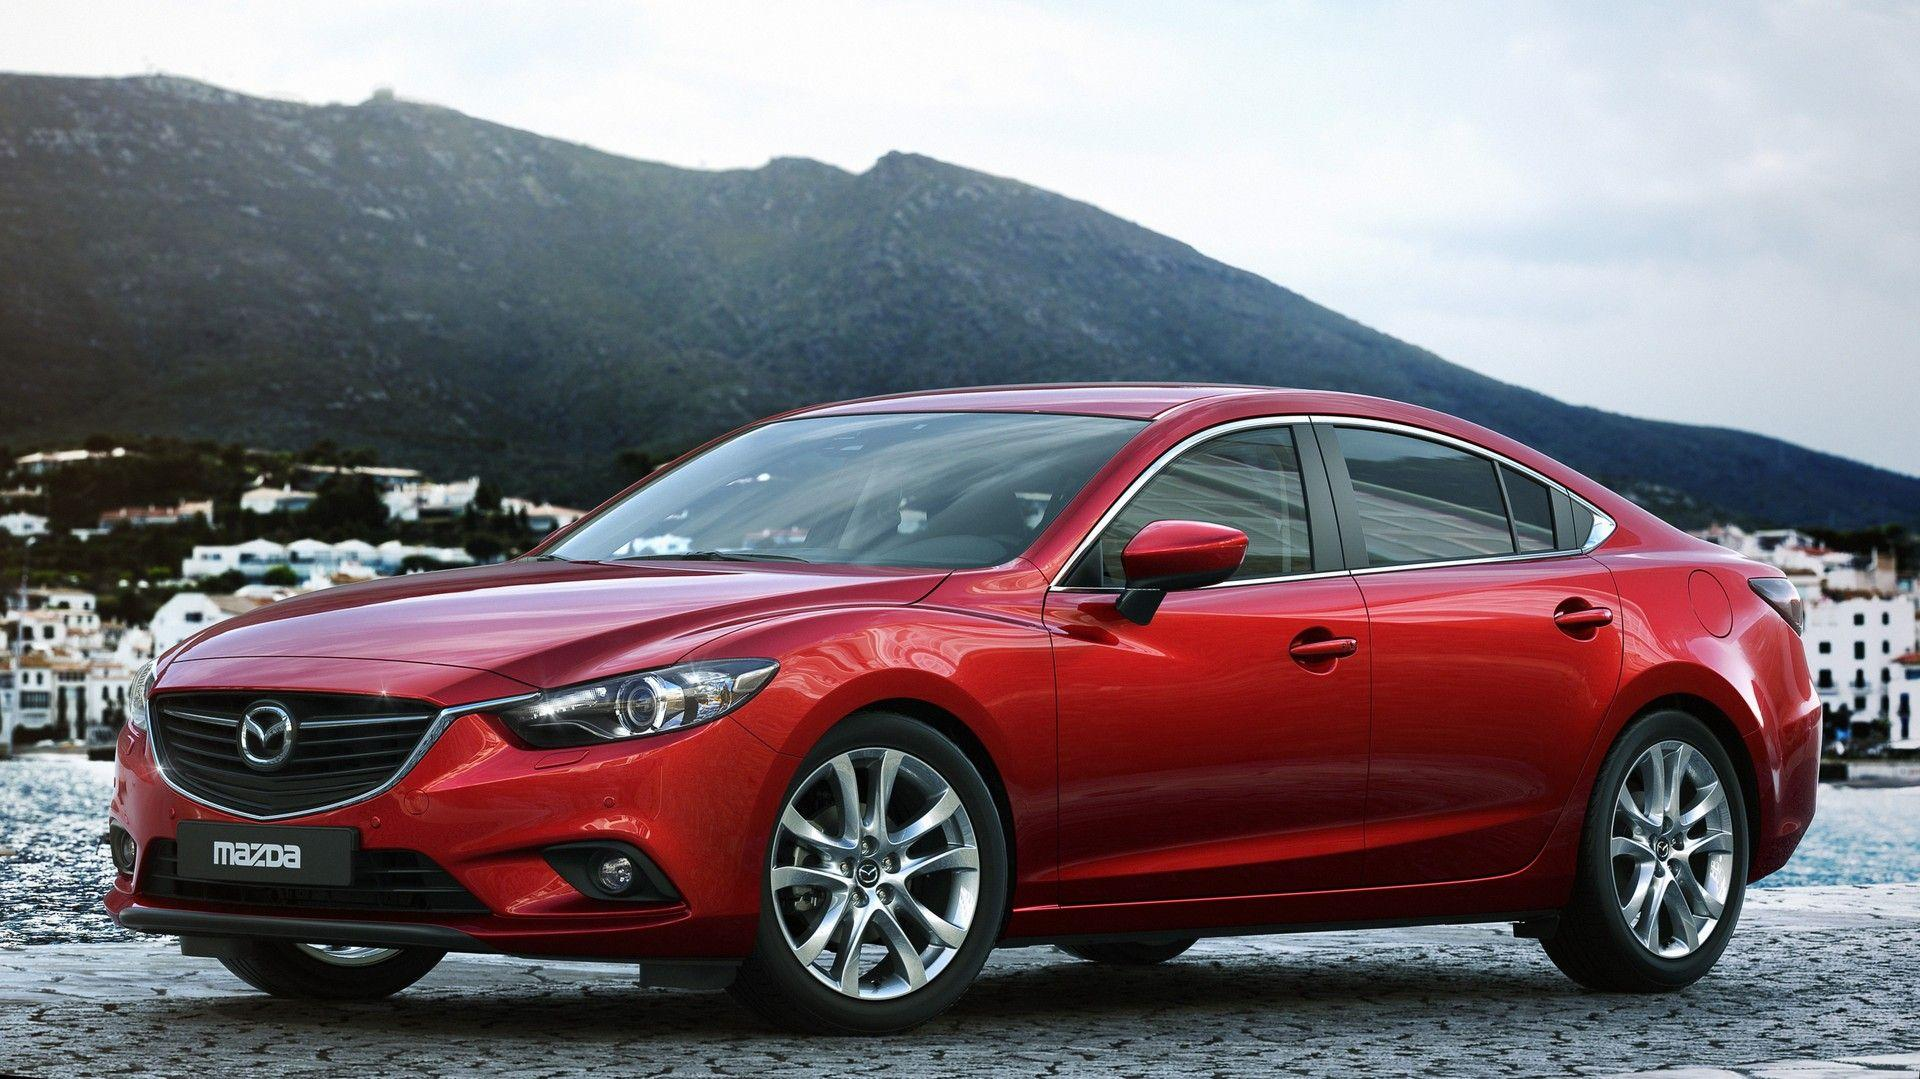 1920x1079px Top Mazda 6 wallpapers for free 94 #1466755911